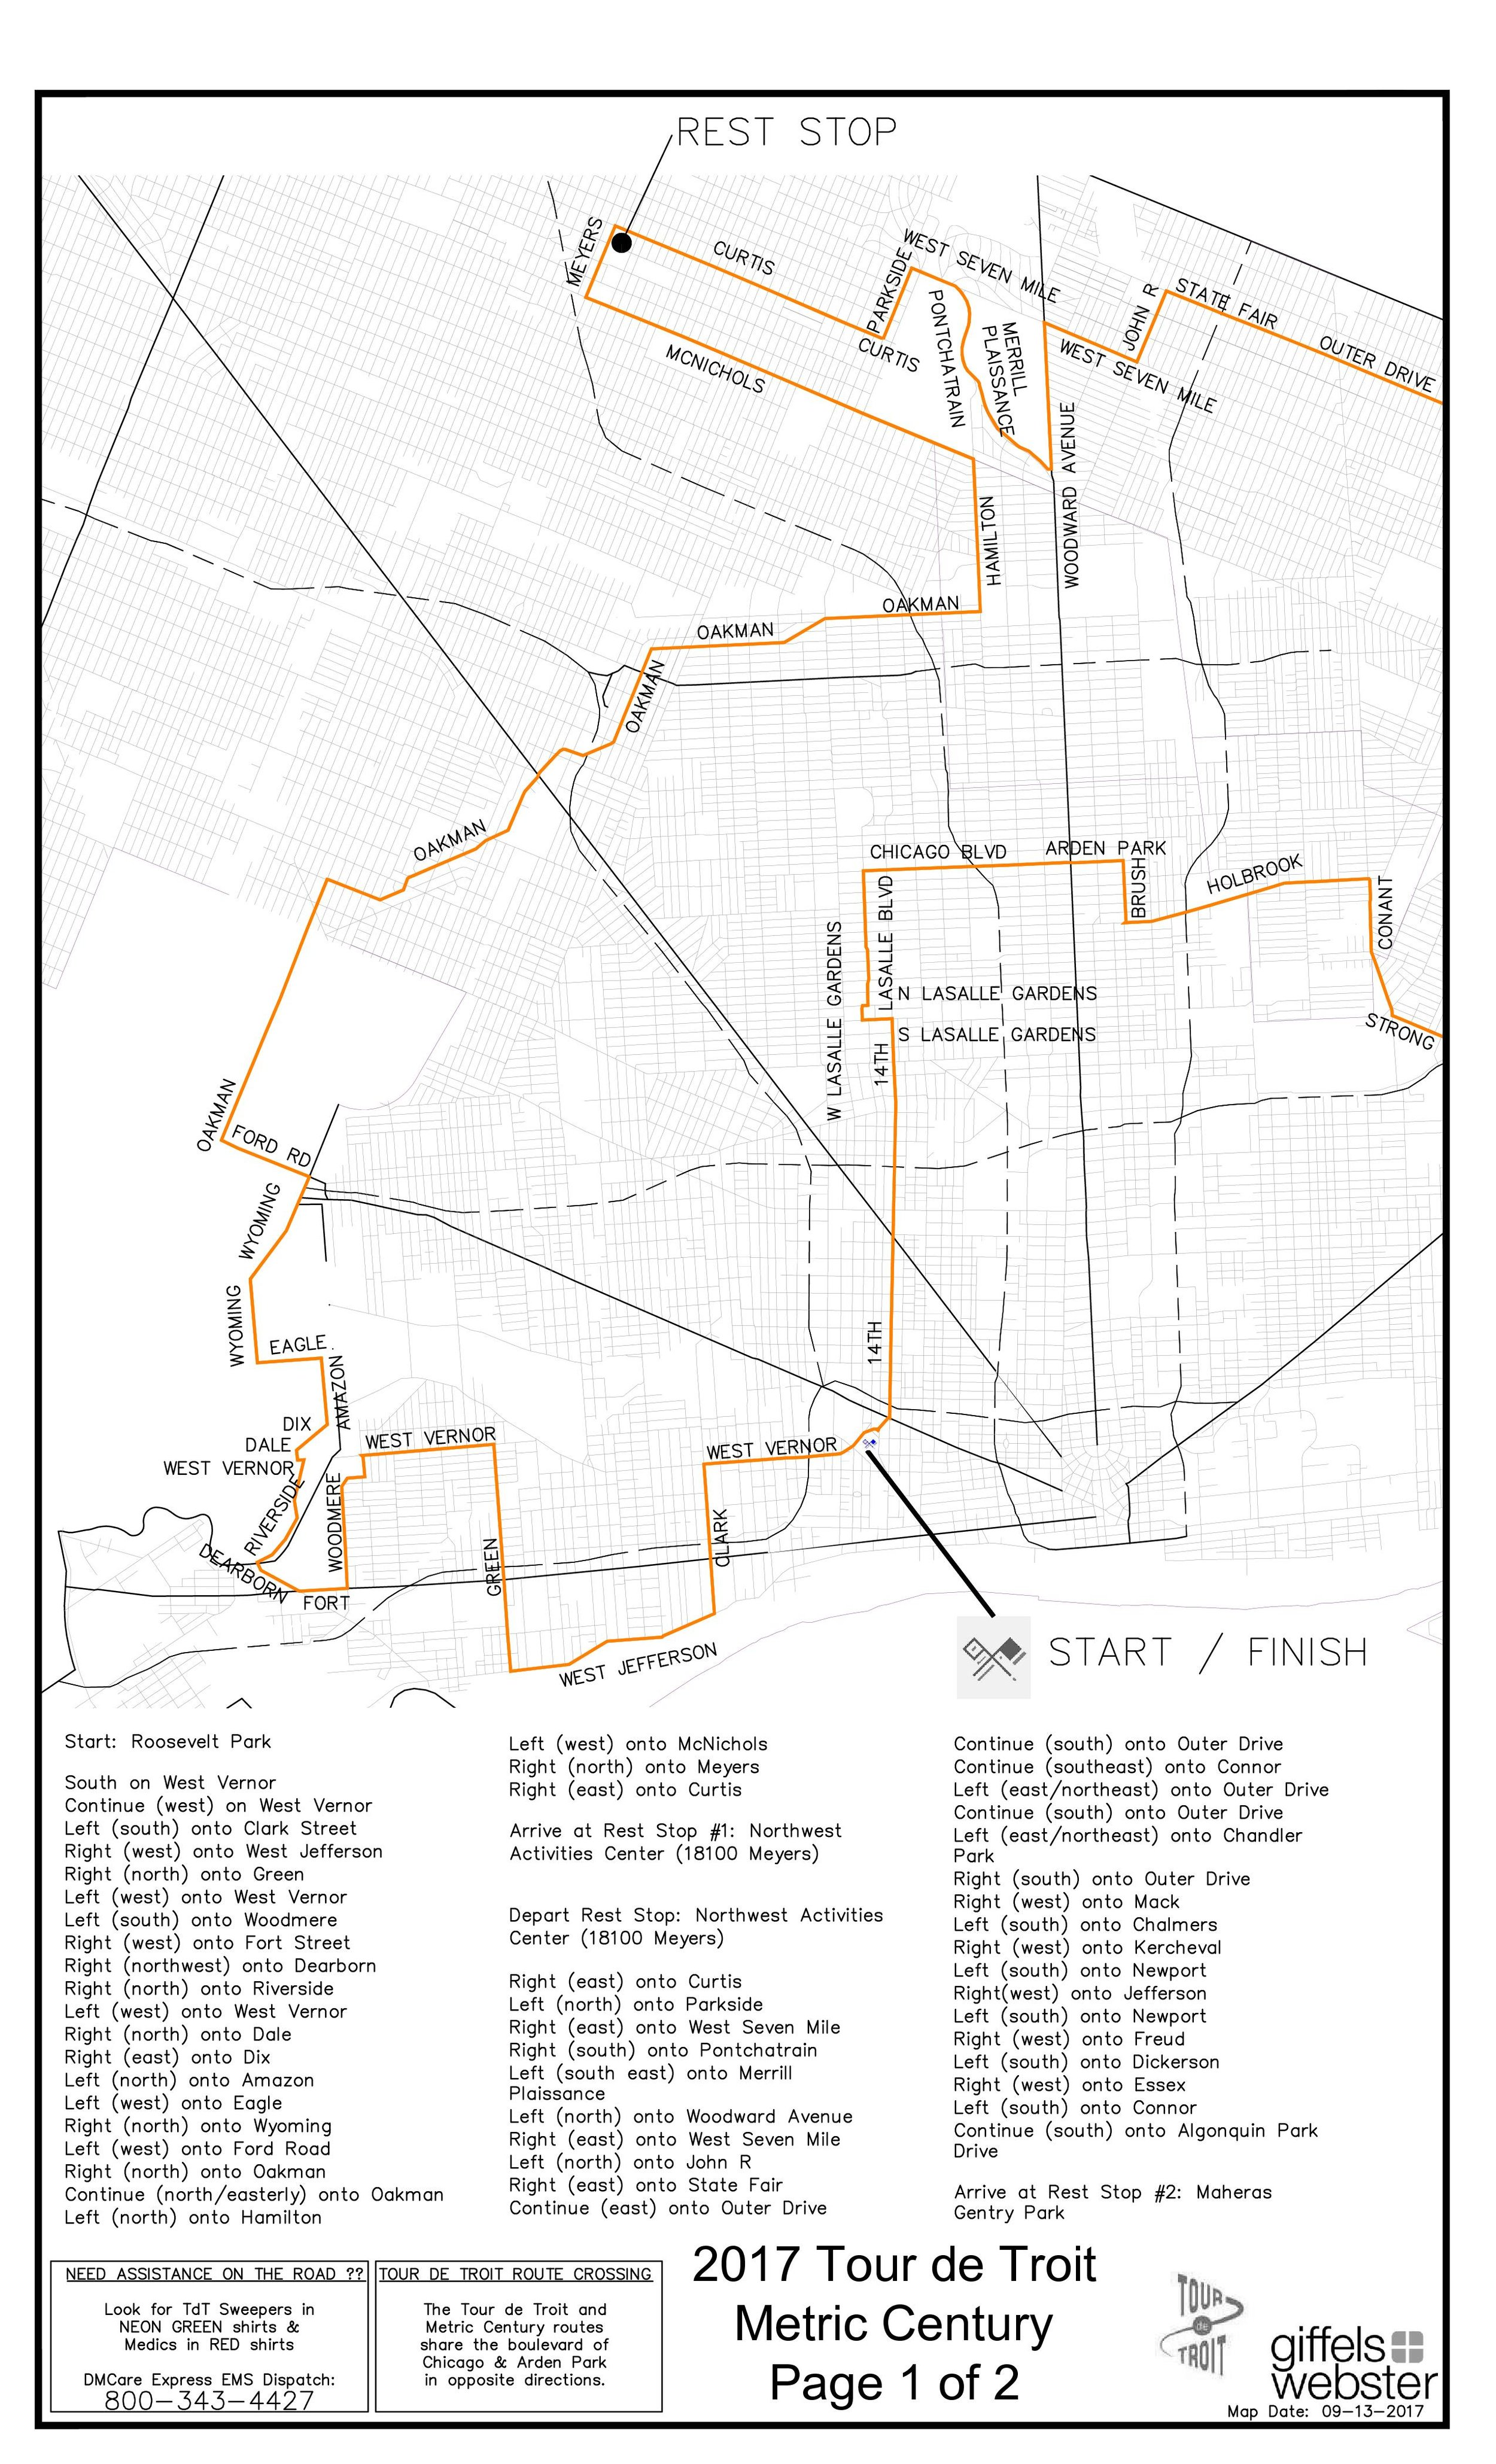 route map - metric 2017 - page 1 - 09-13-2017.jpg